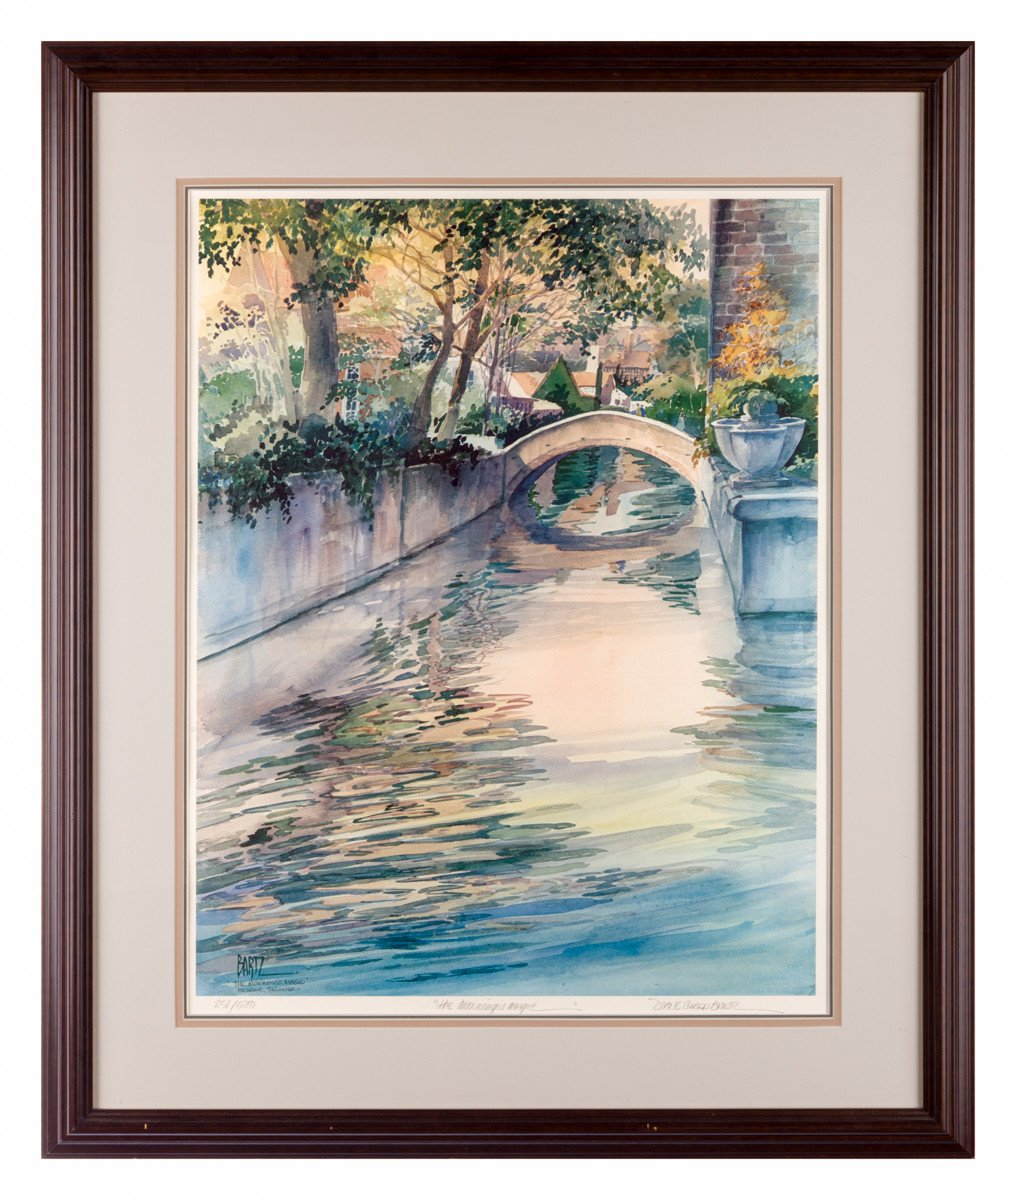 Morning's Magic - by Diane Clapp Bartz (Signed Lithograph) - Framed Art